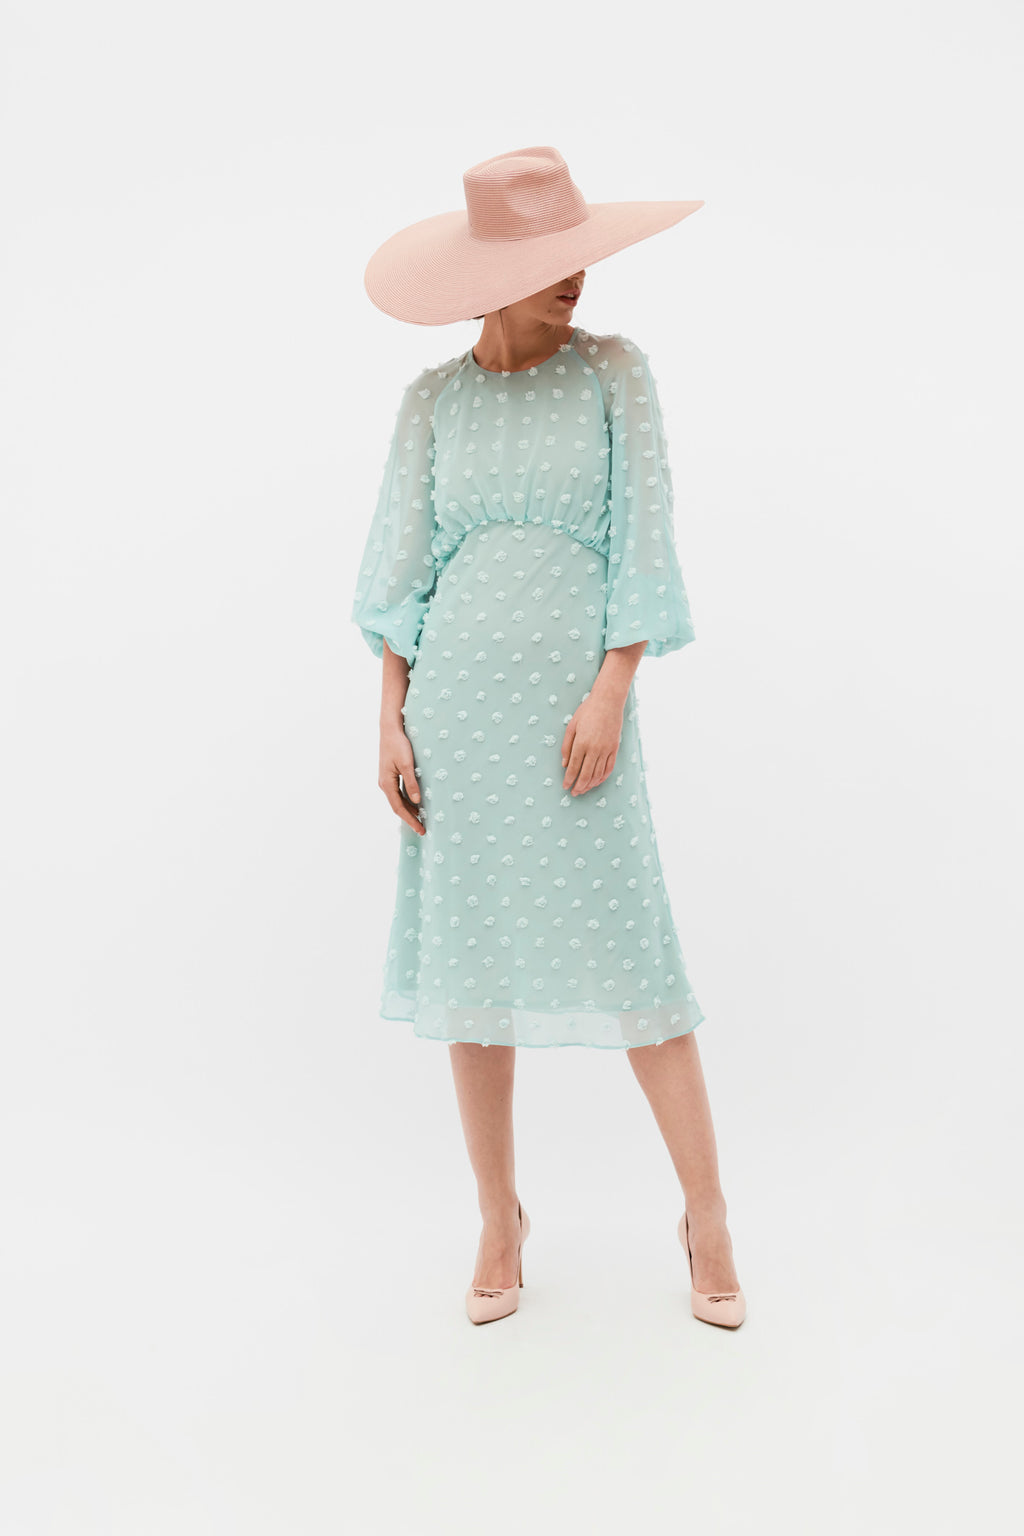 Ceremony dress made of chiffon with large frayed polka dots. Dress with long sleeves with elastic band